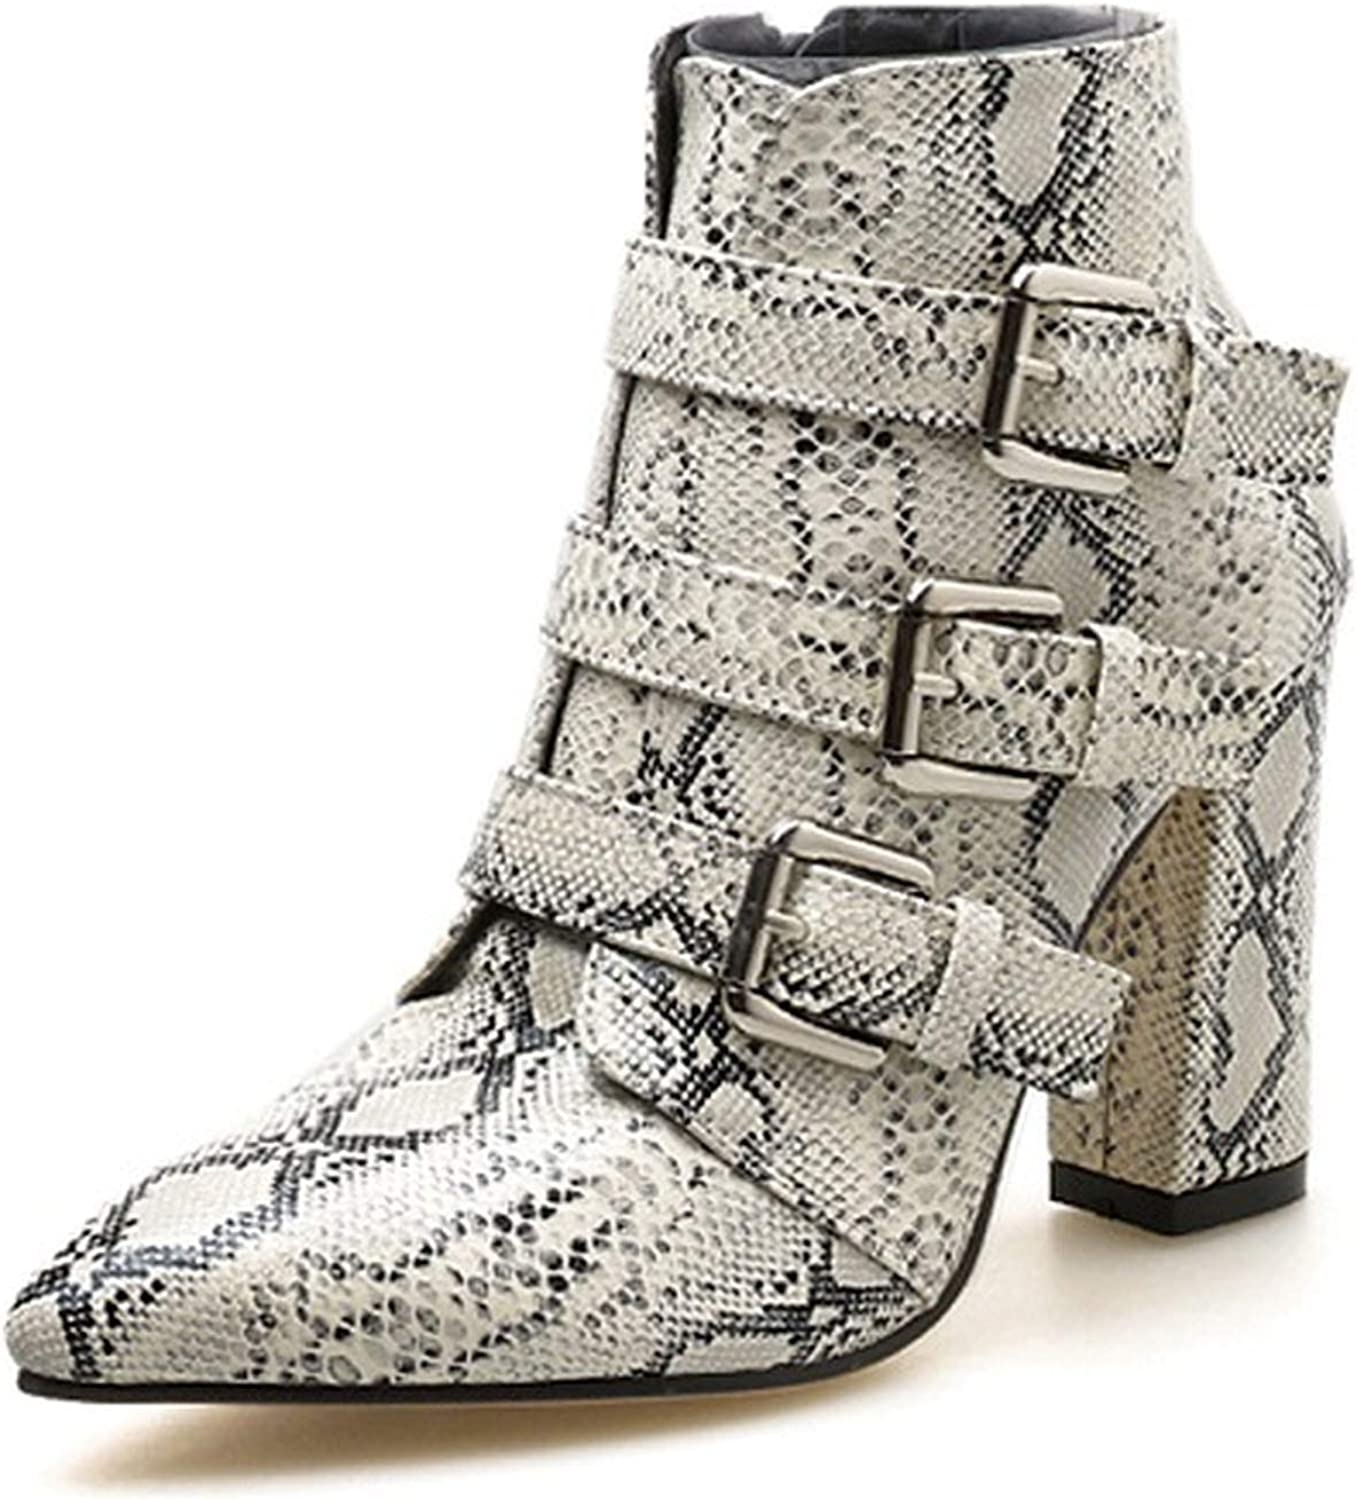 Crazy-shop Print Snake Pu Women Ankle Boots Buckle Pointed Toe Thick High Heels Party shoes